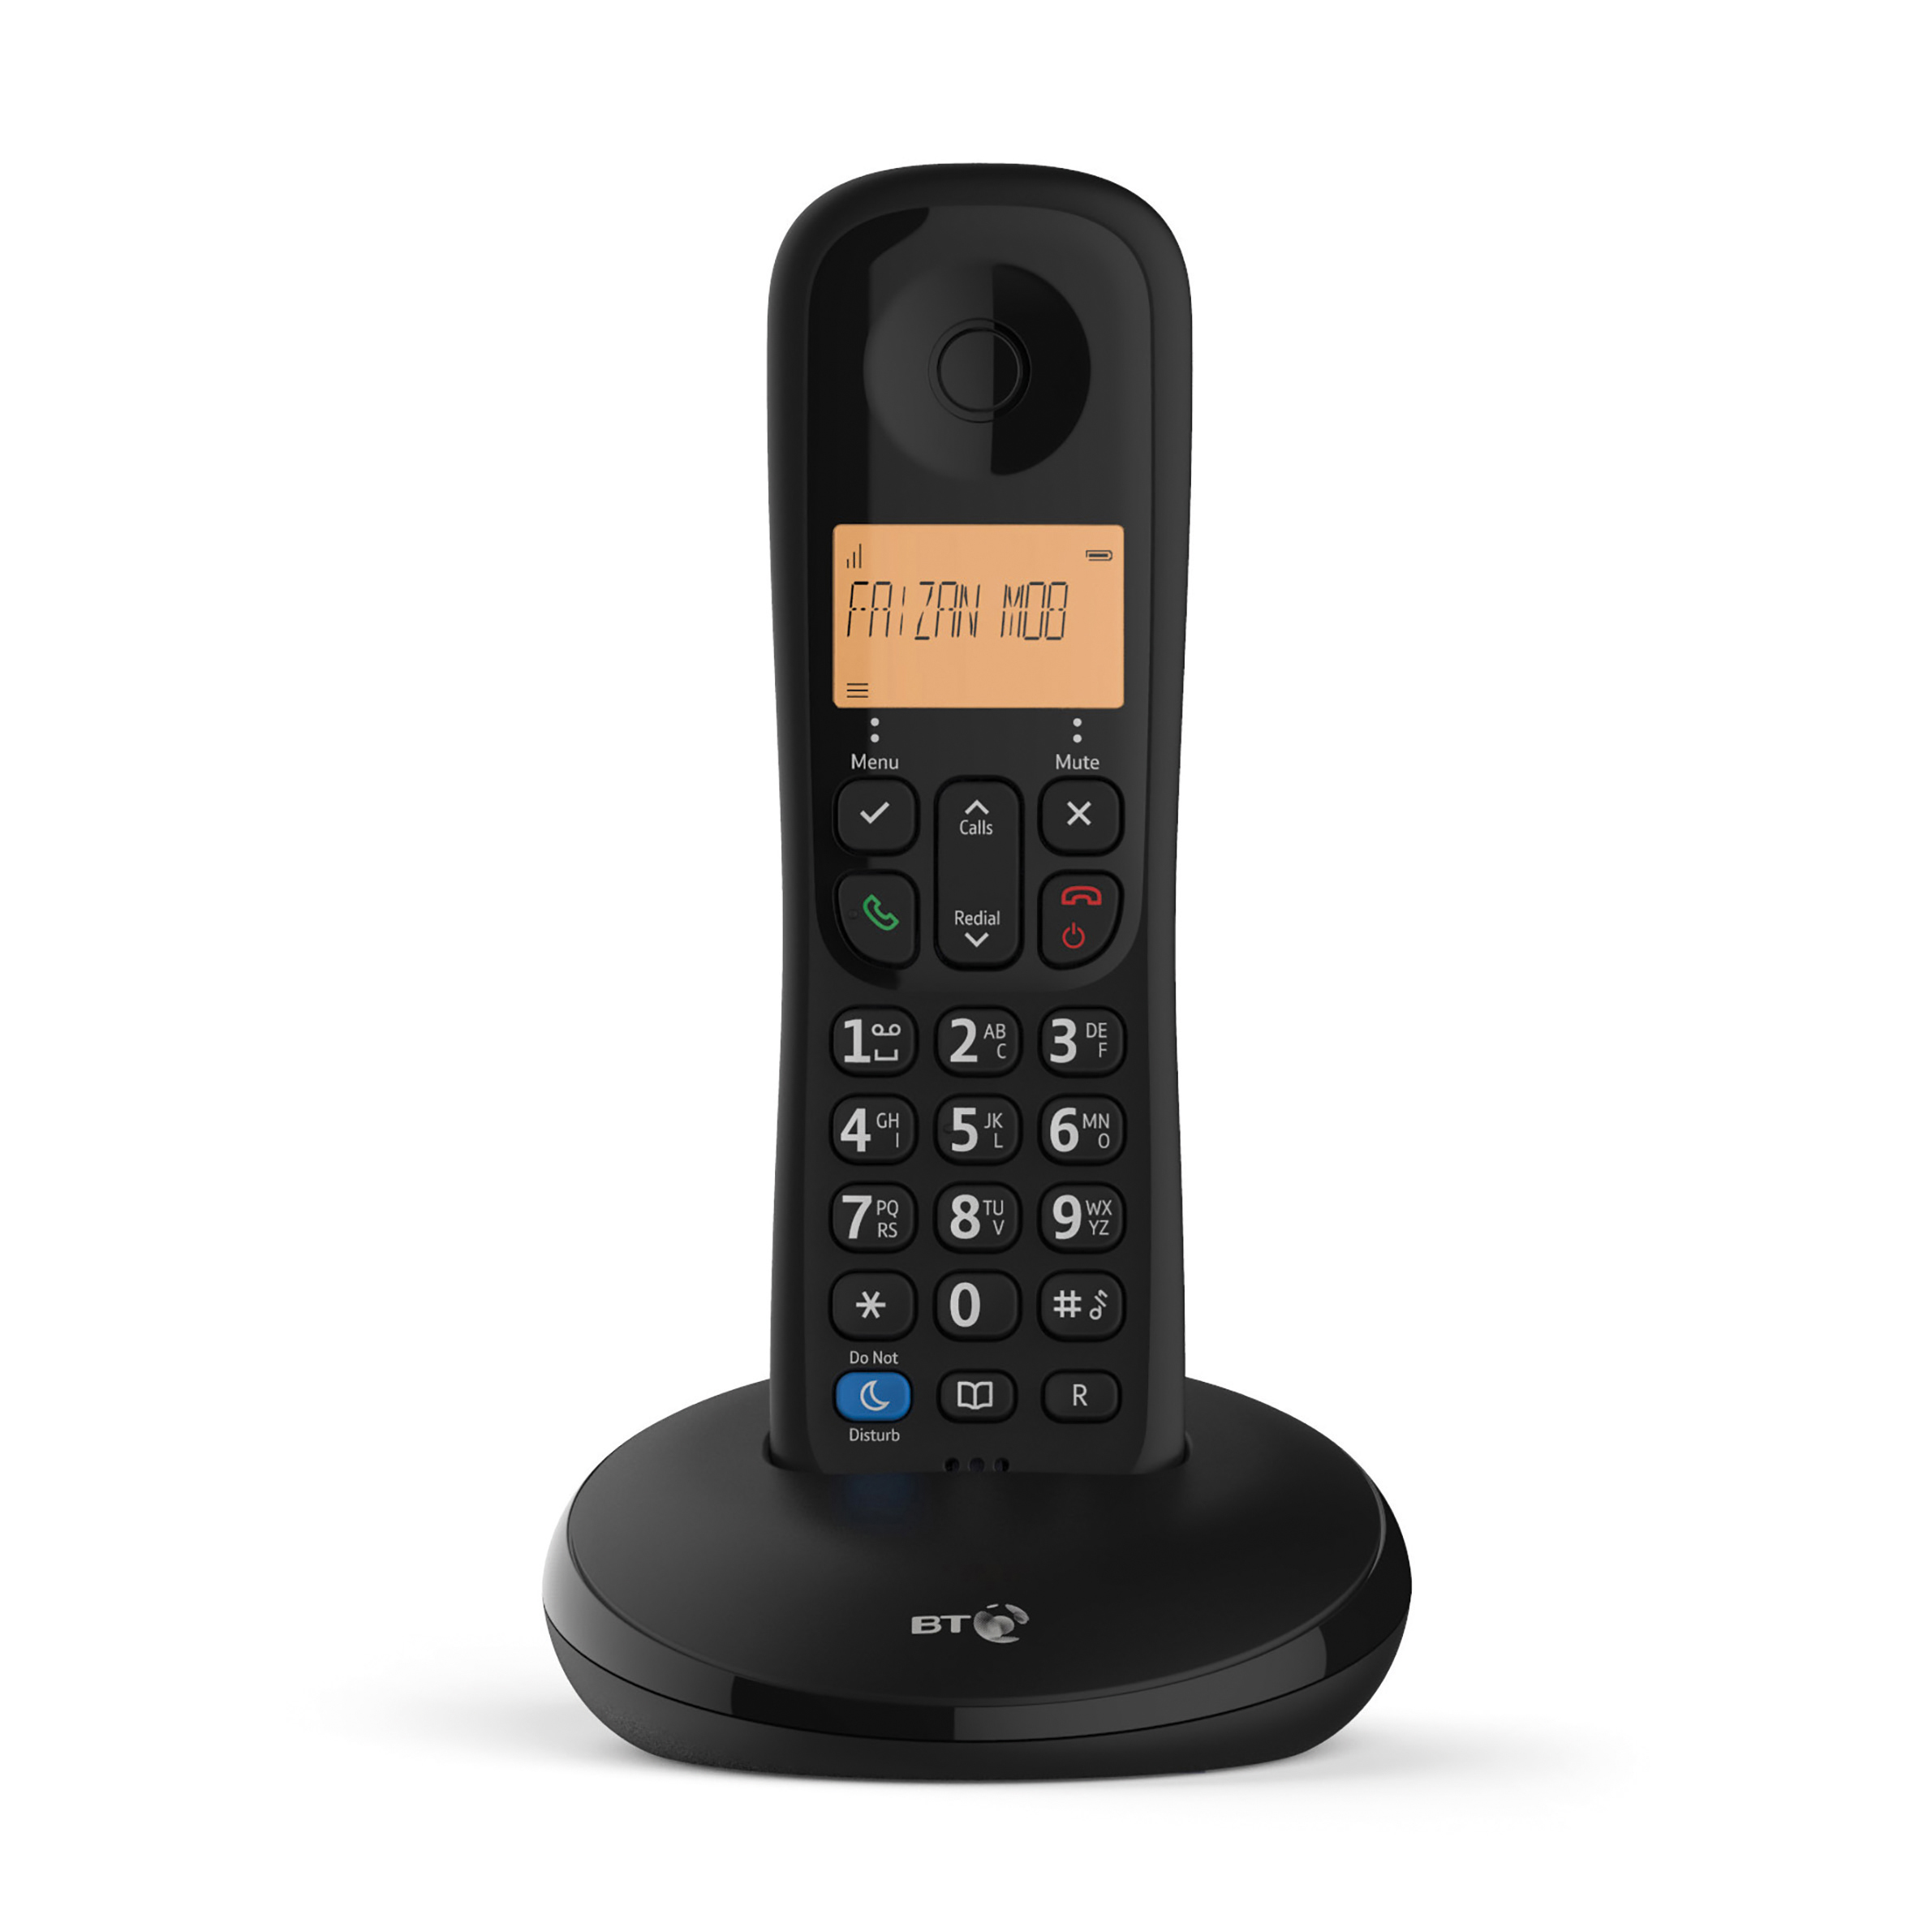 Phone handsets BT Everyday 1 Telephone 50 Contact Caller ID Storage Single Black Ref 90665